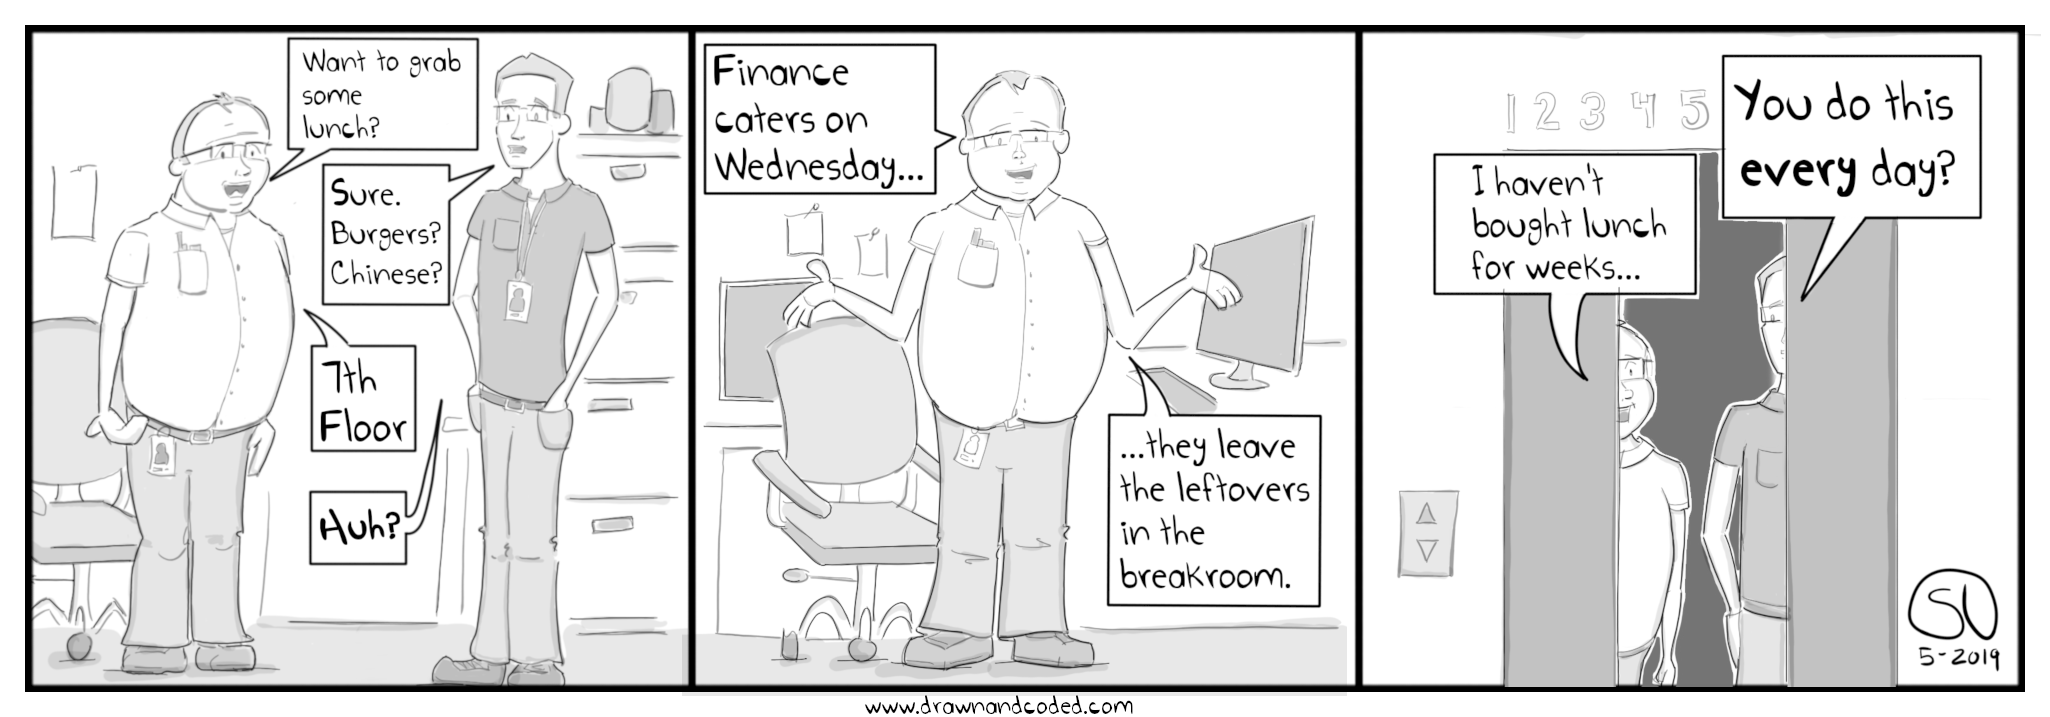 free lunch leftovers breakroom coworker freebie work brownbag comic